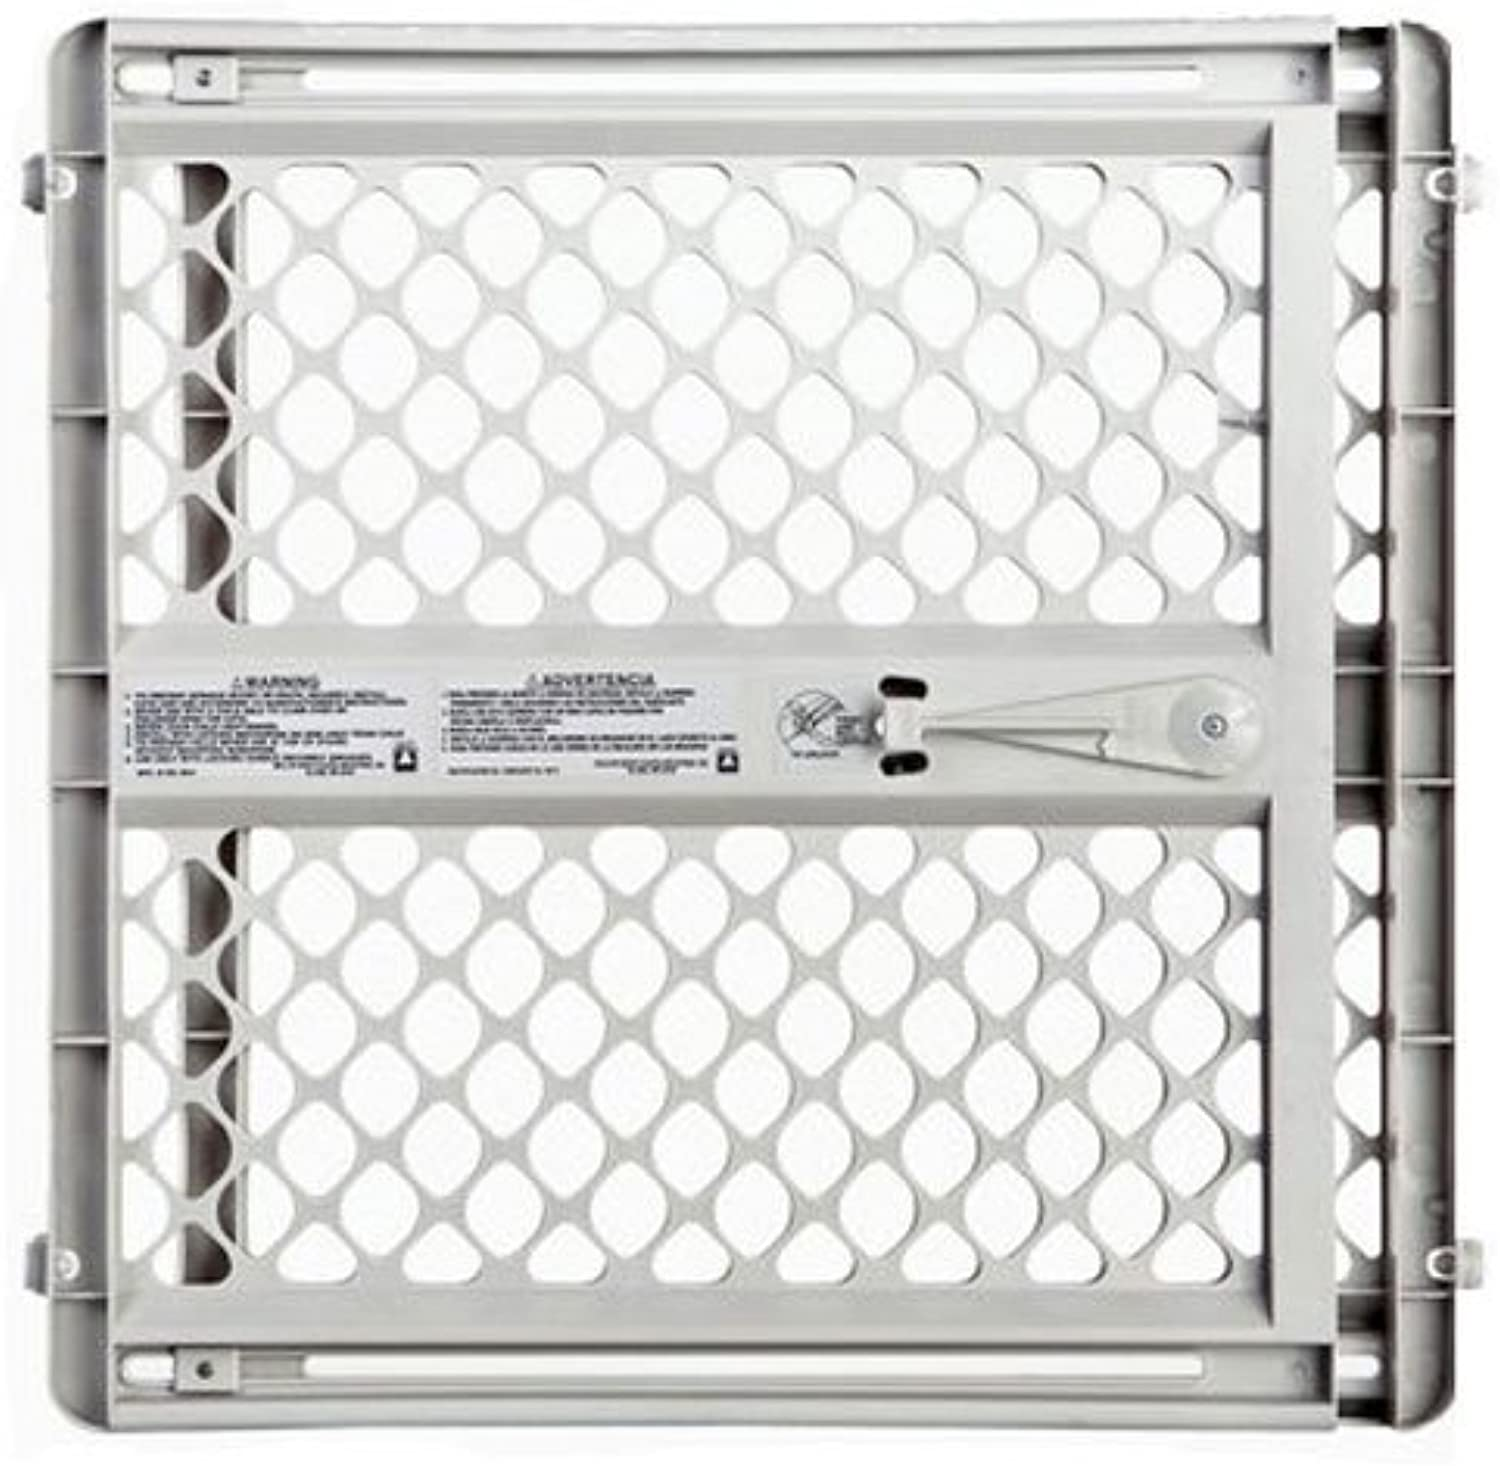 Northstates 8619 42 Supergate III Safety Gate